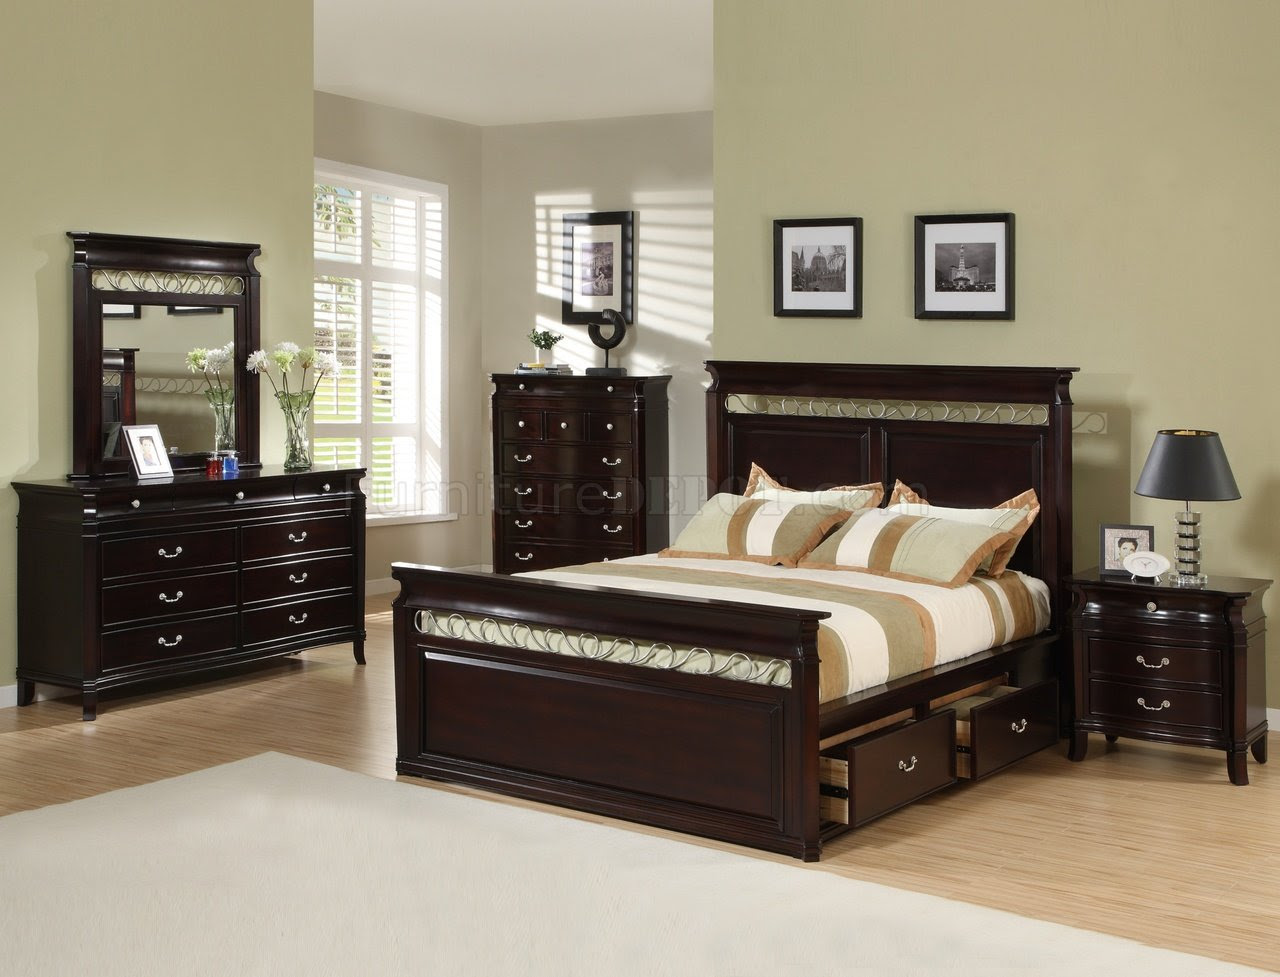 Queen Bedroom Sets For Sale